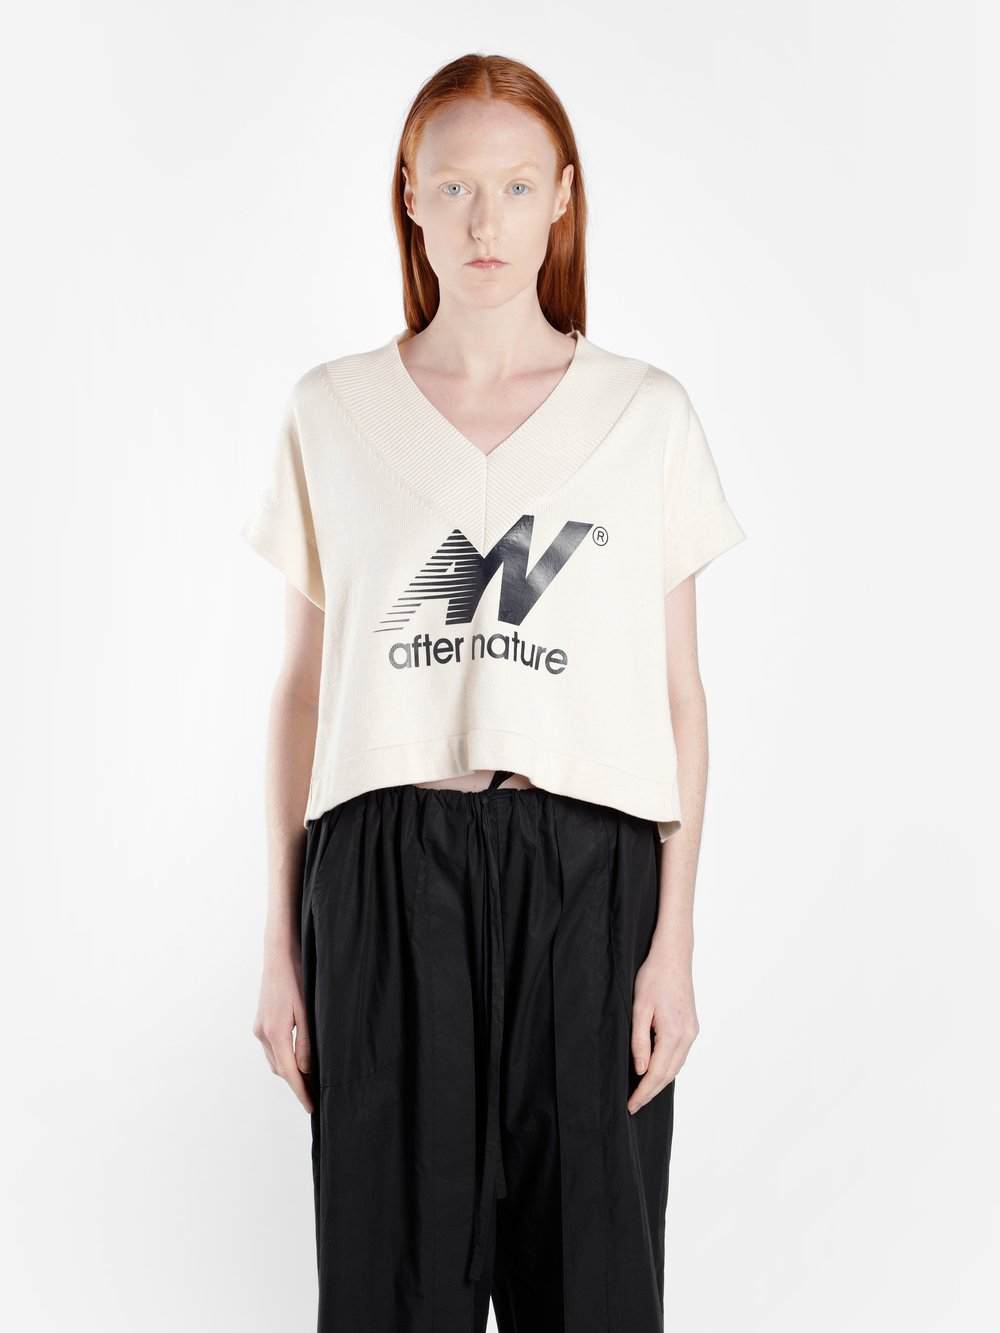 AALTO After Nature Print Cotton Crop Top in Runway Piece